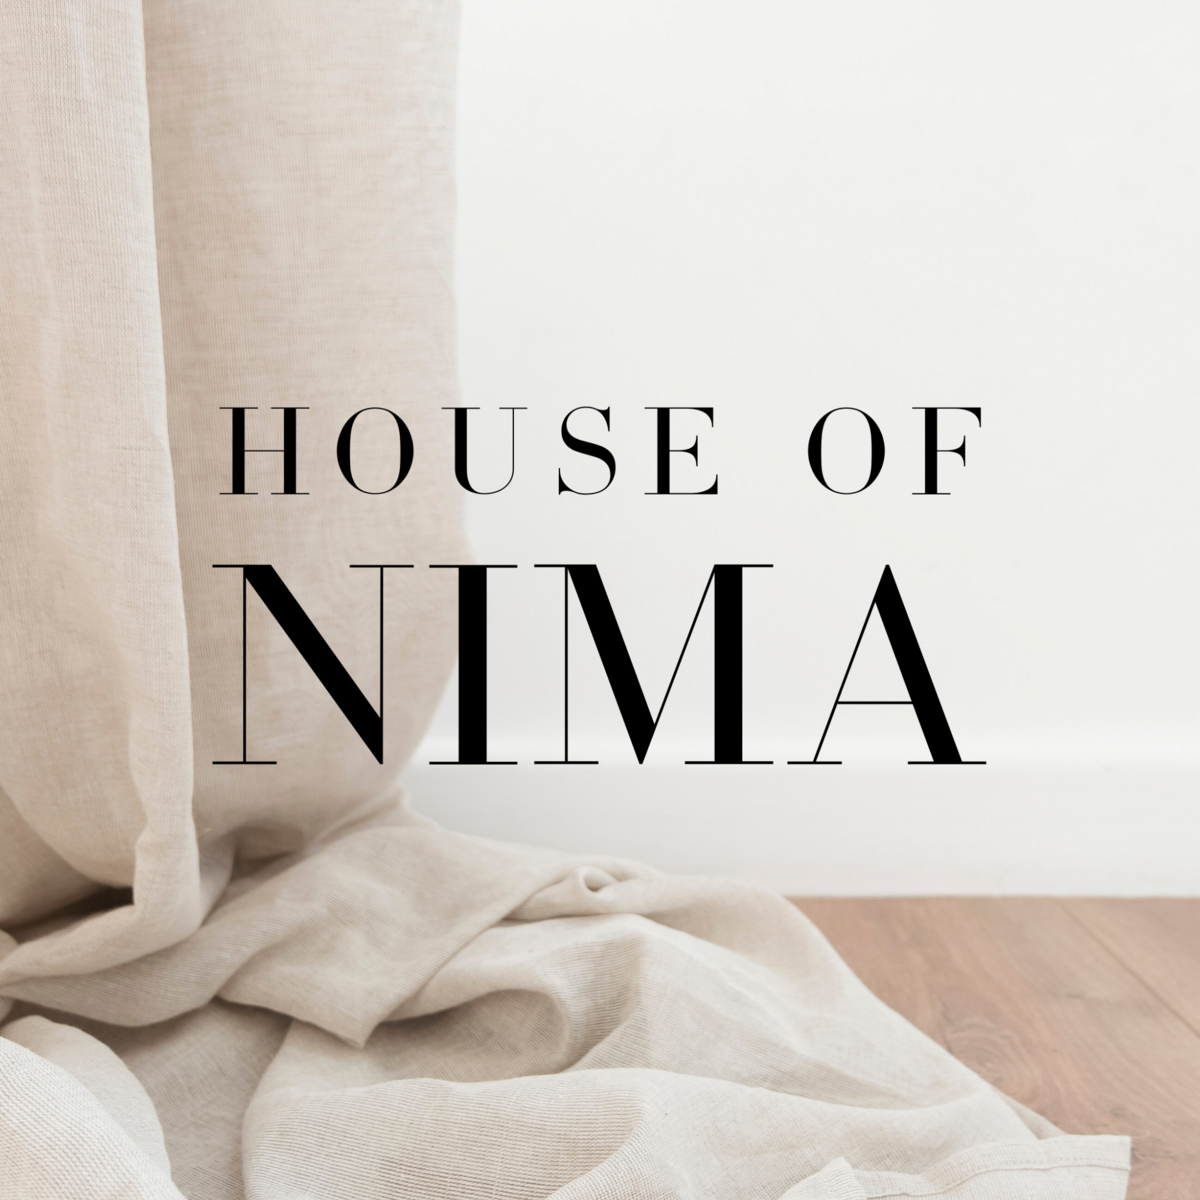 HOUSE OF NIMA ALT LOGO APPLICATION 1